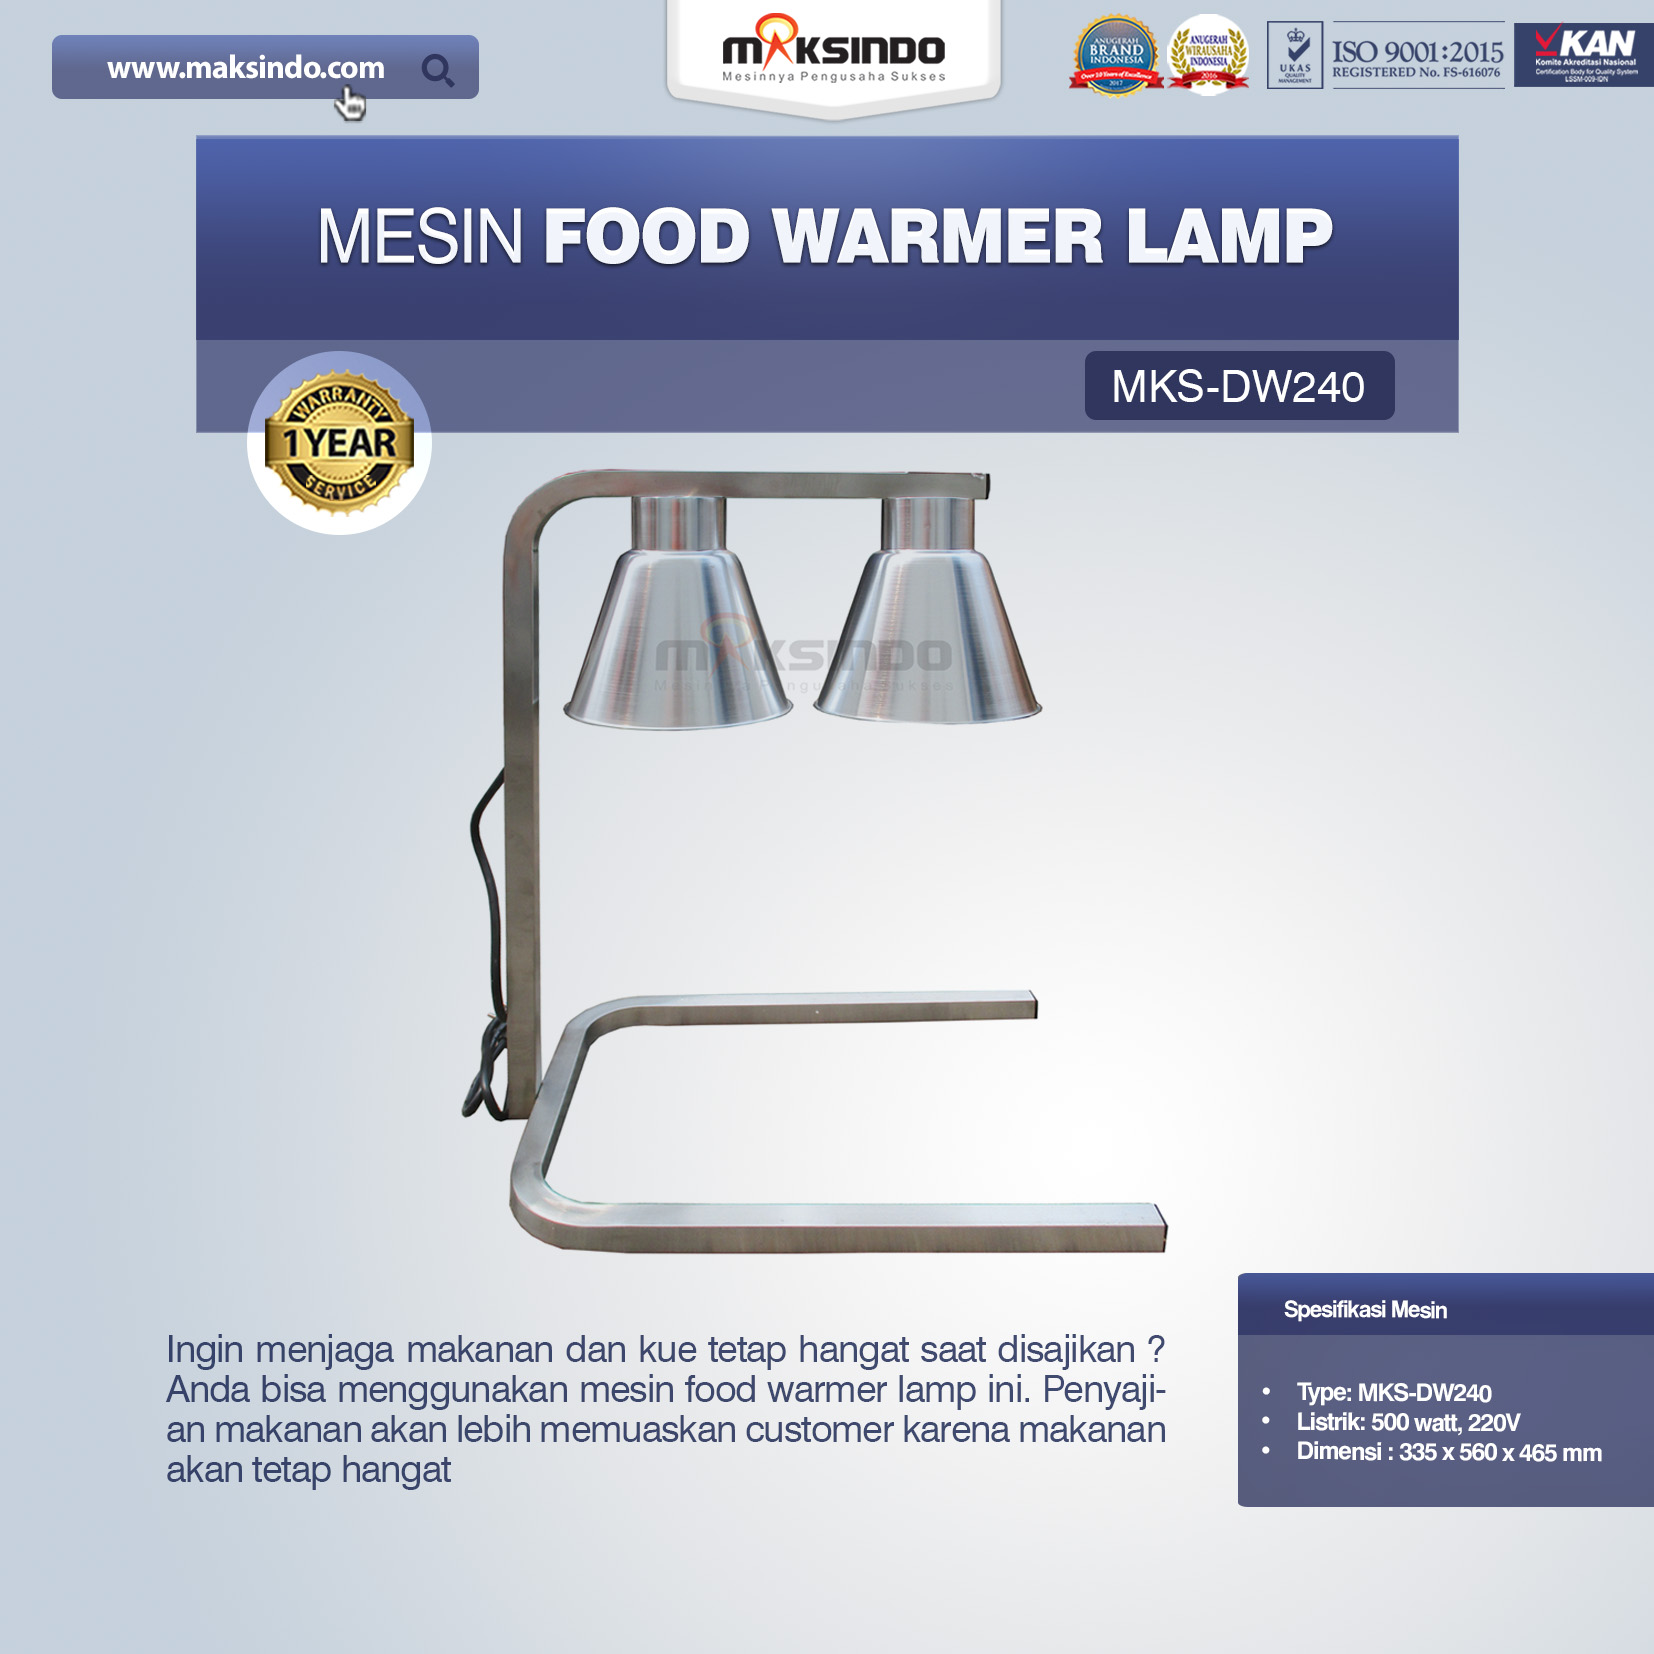 Jual Mesin Food Warmer Lamp MKS-DW240 di Malang